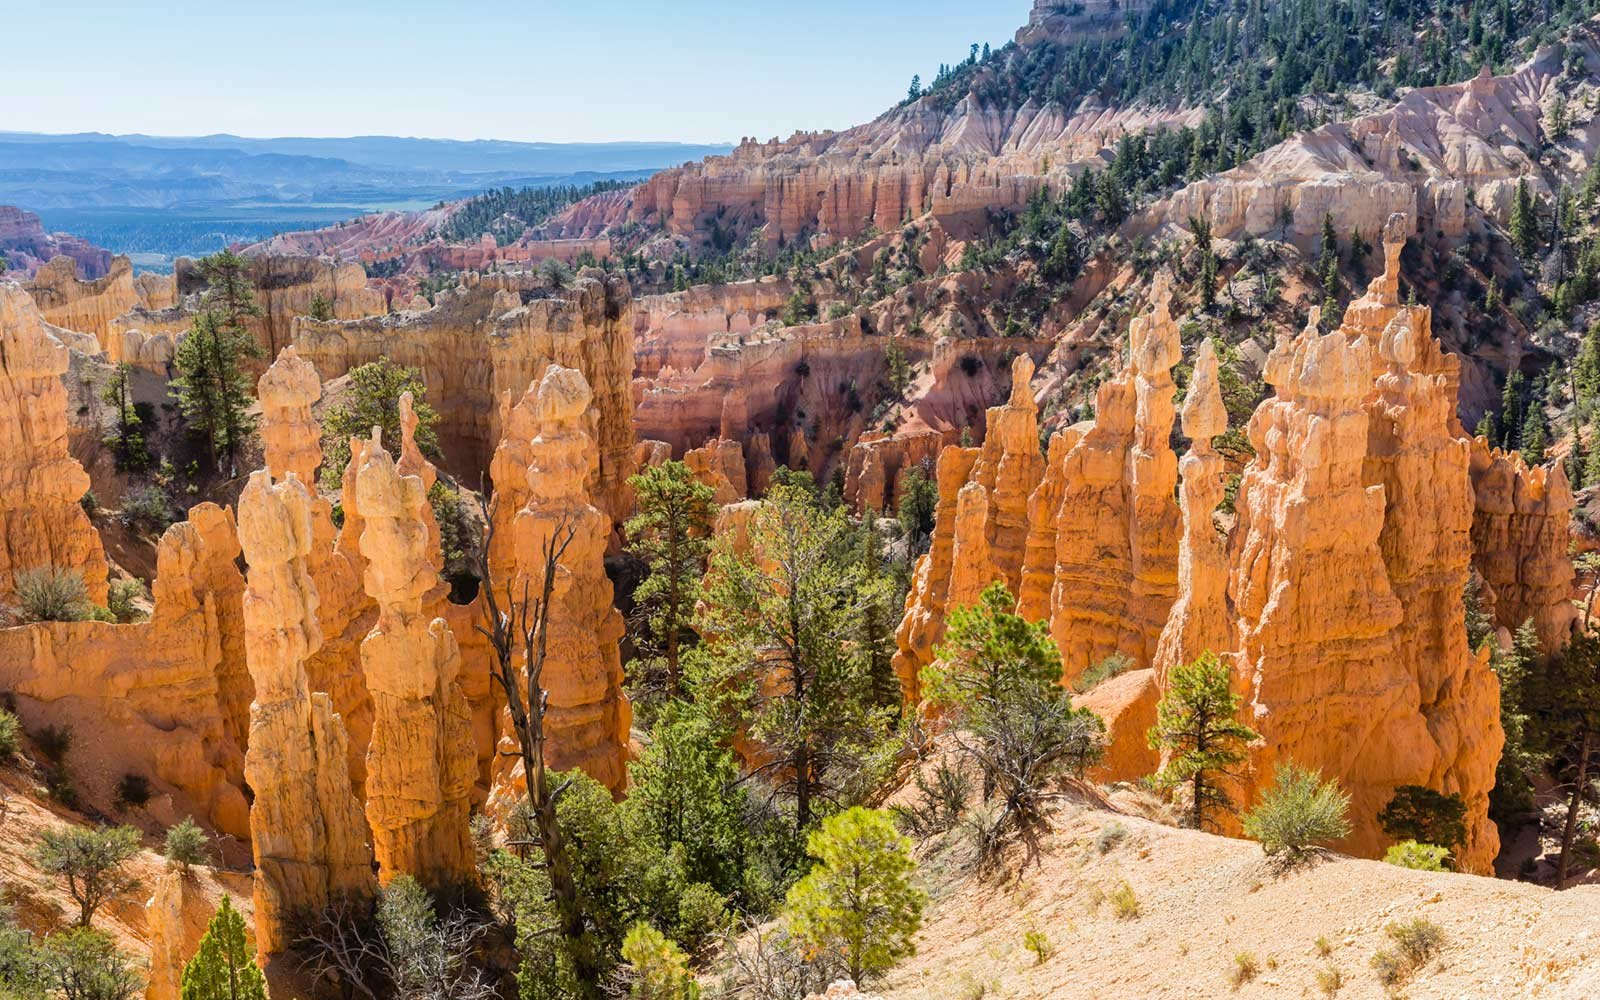 Hoodoo rock formations, Fairyland Trail, Bryce Canyon National Park, Utah